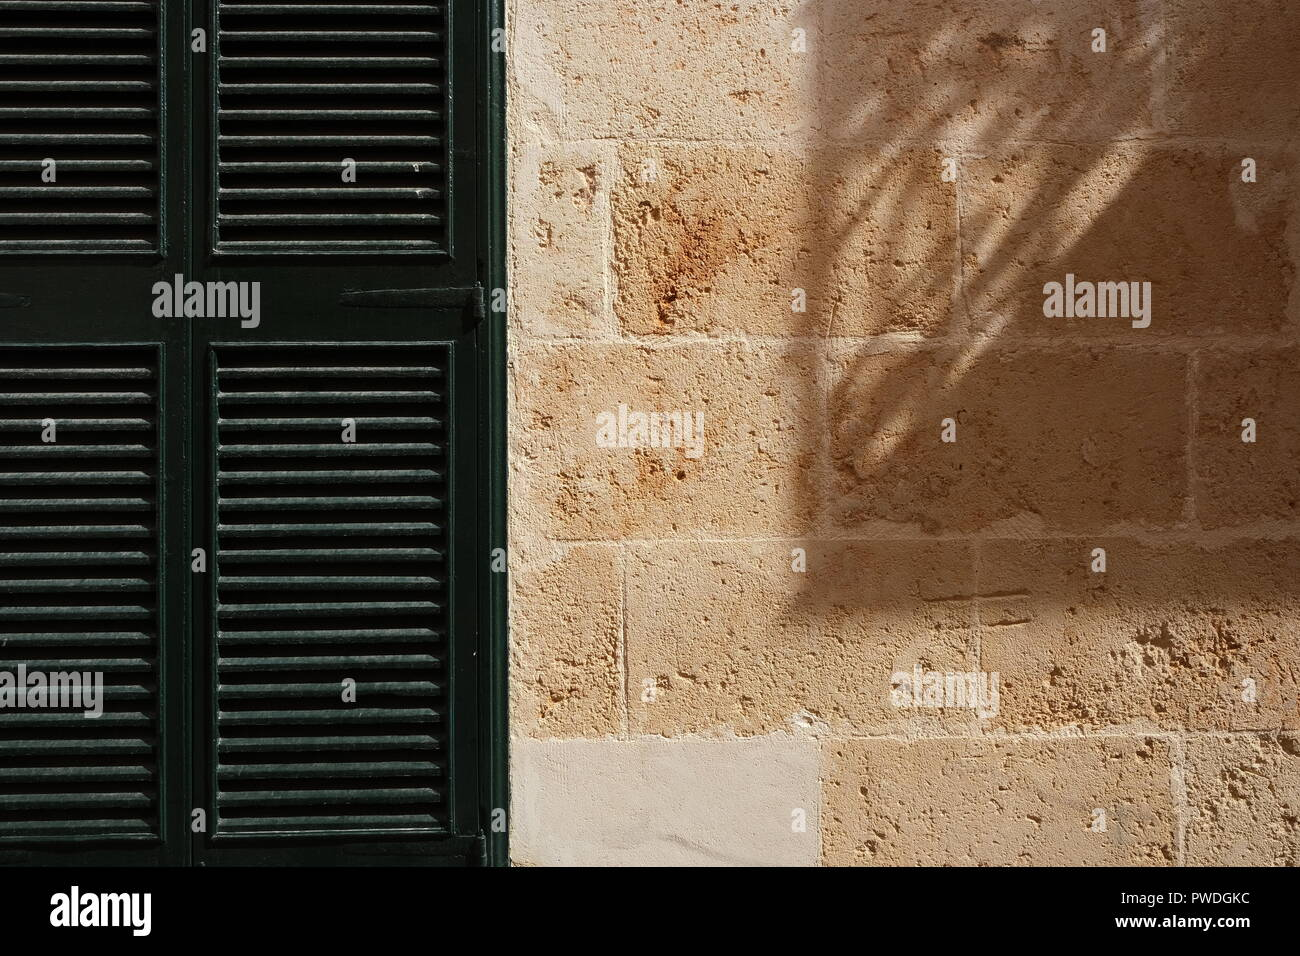 Wooden Shutter And Strong Shadow Cast On Stone Wall